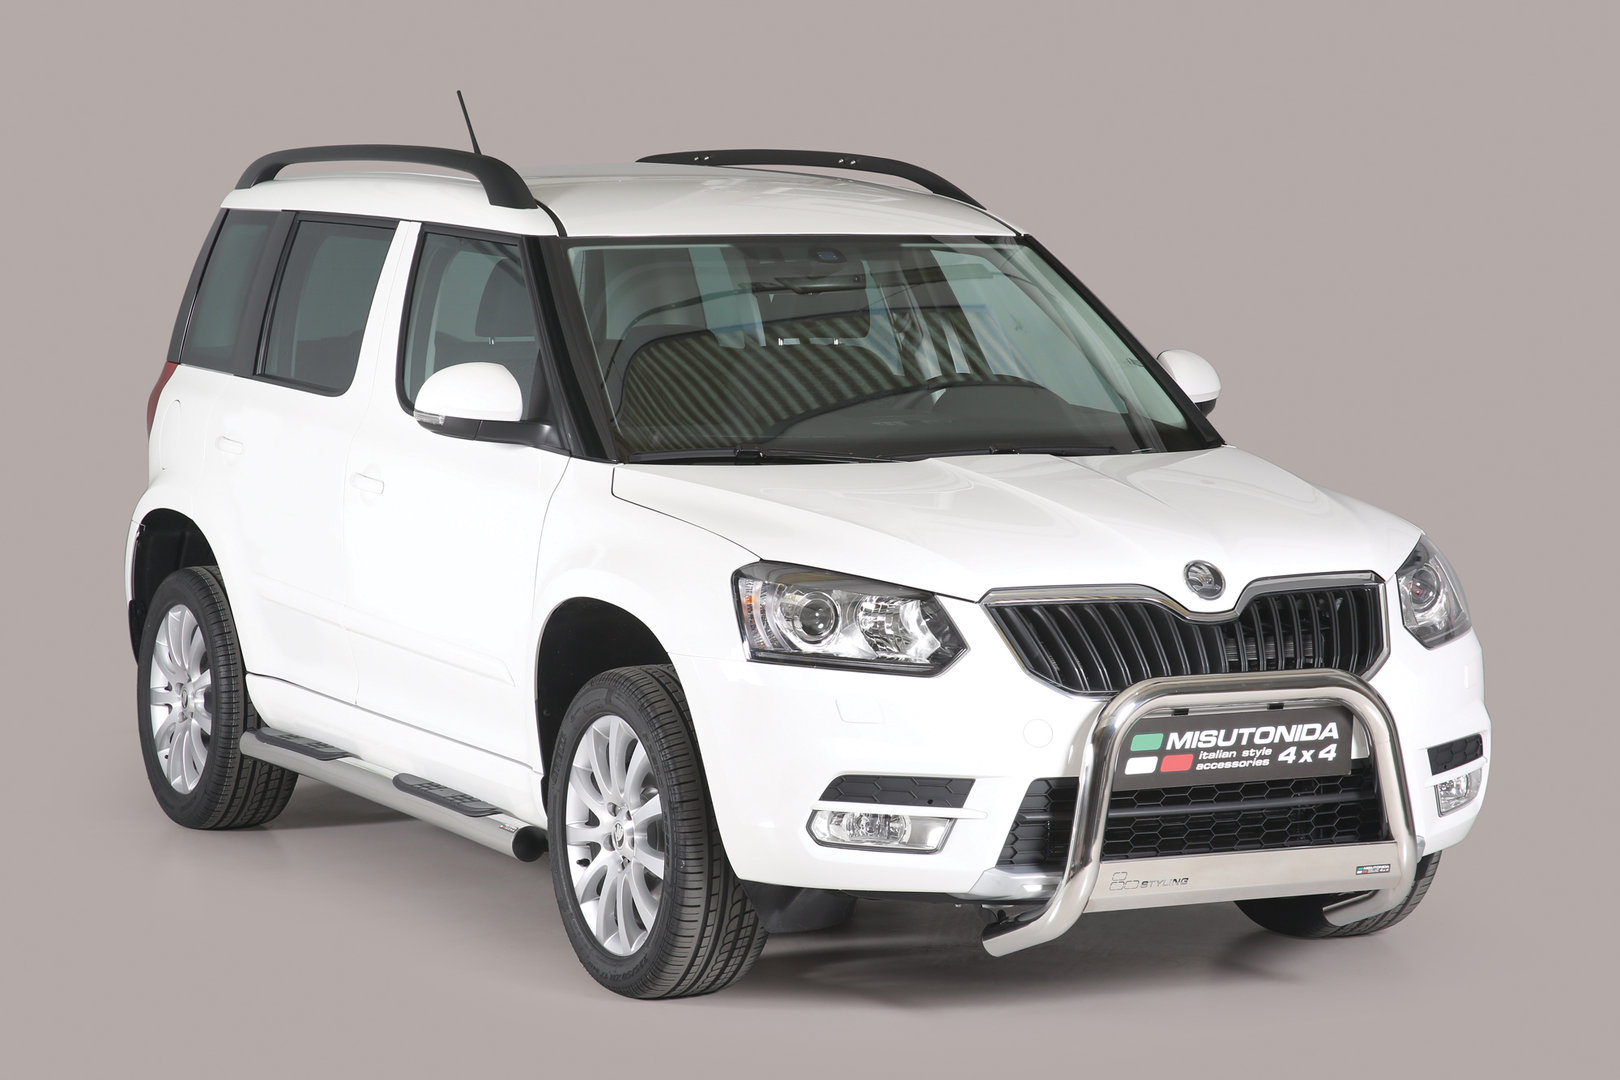 skoda yeti eu front guard 2014 tuning parts to skoda. Black Bedroom Furniture Sets. Home Design Ideas